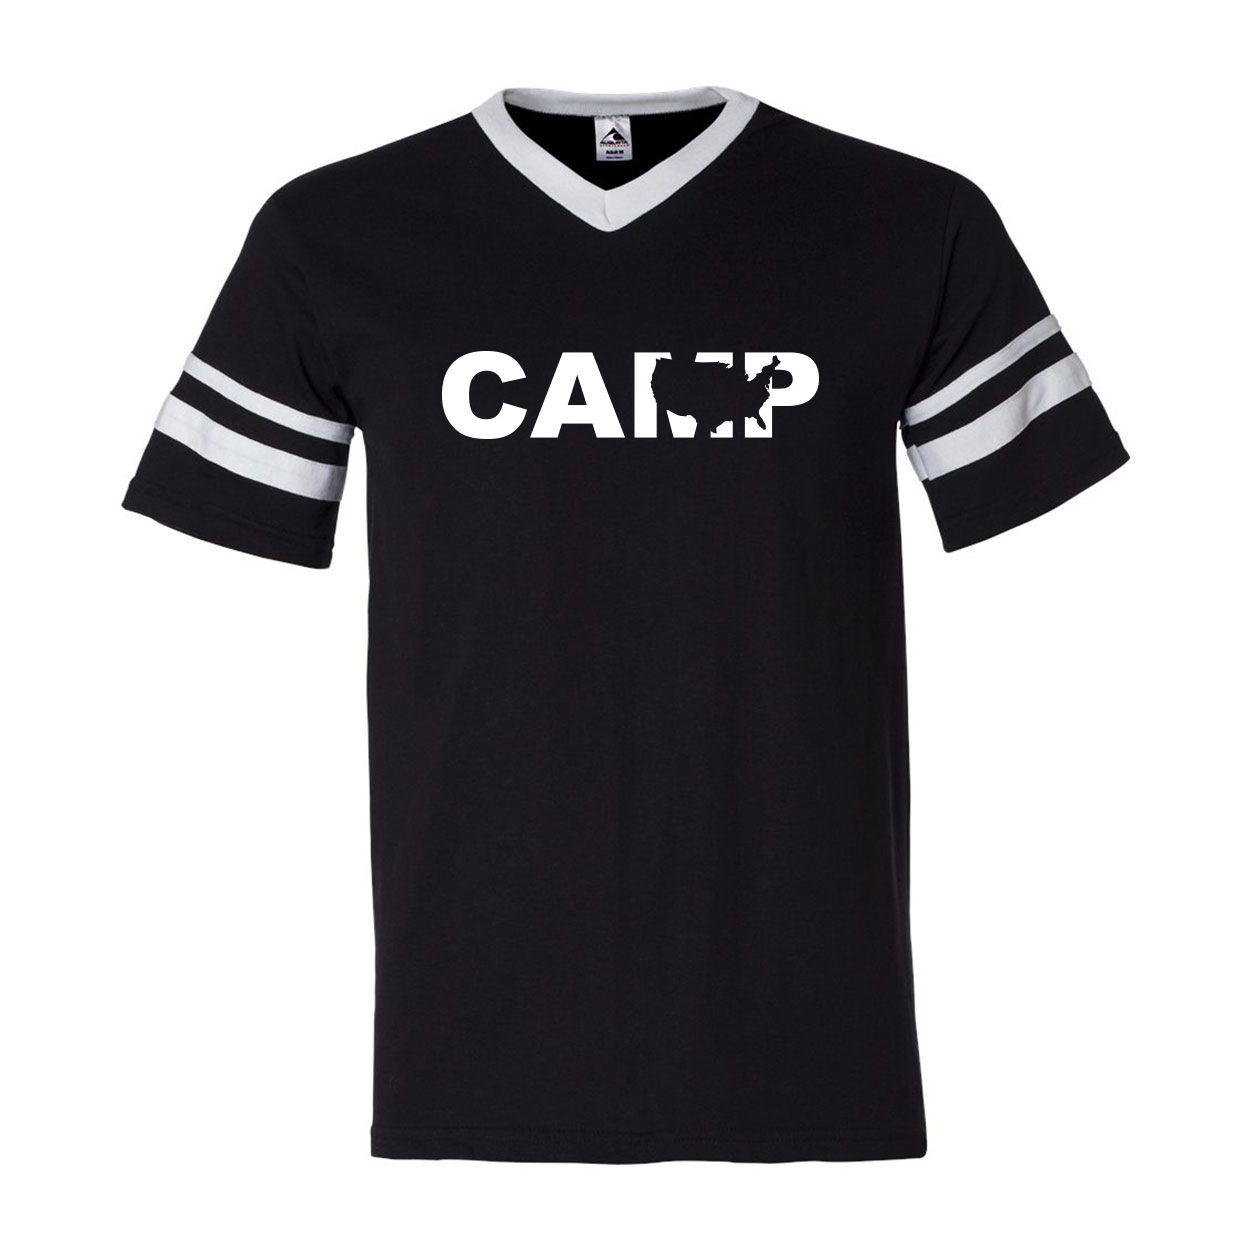 Camp United States Classic Premium Striped Jersey T-Shirt Black/White (White Logo)